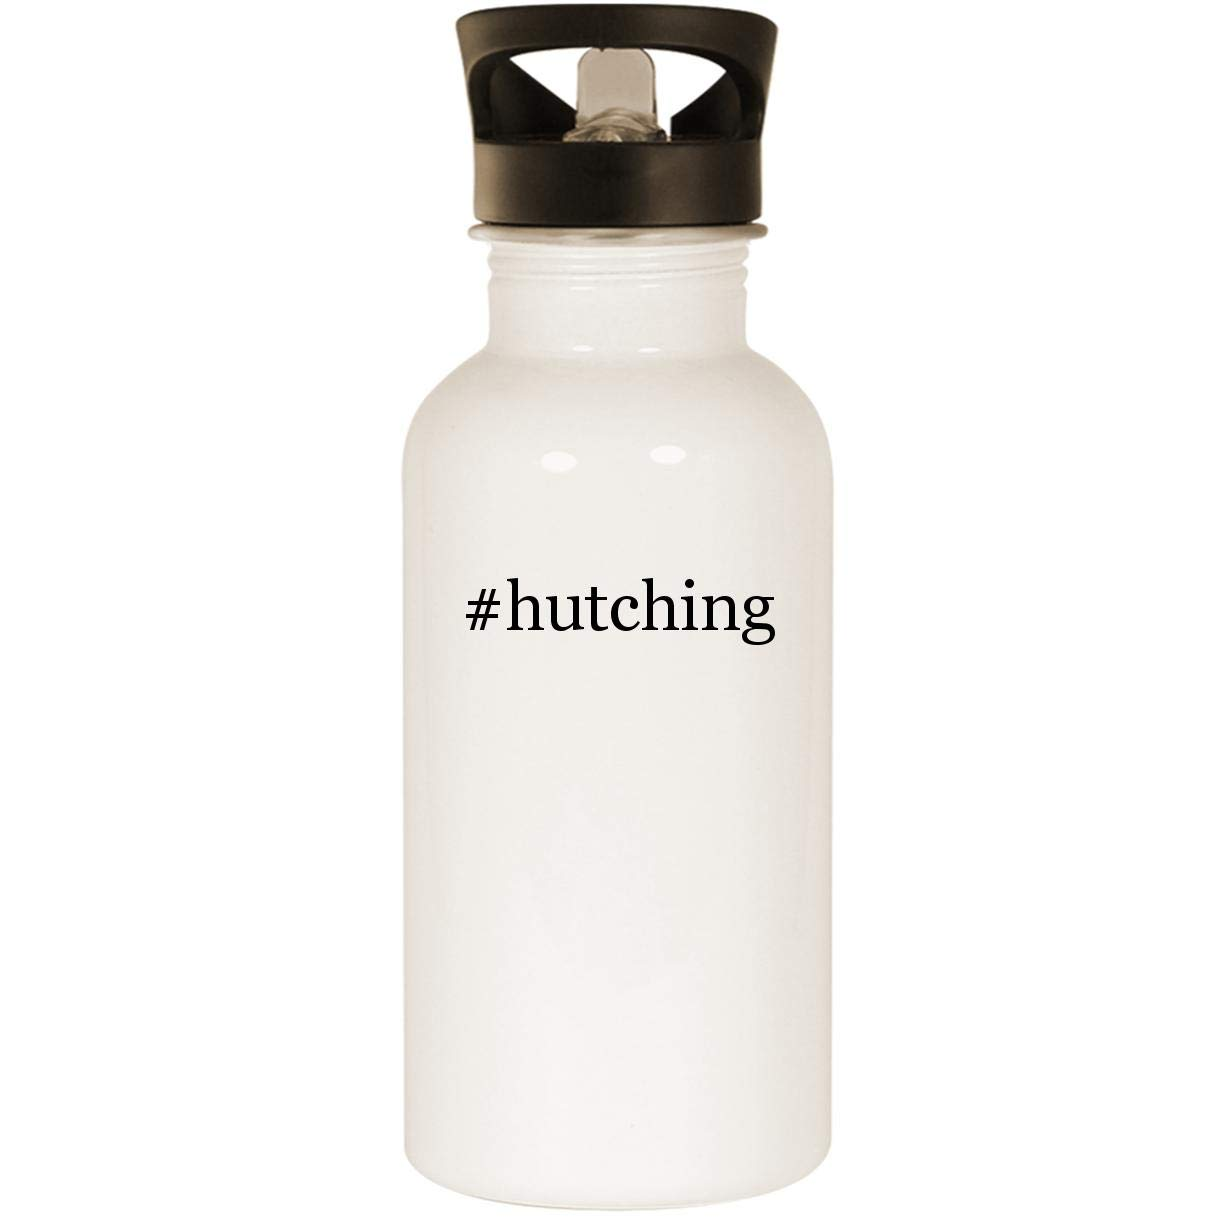 #hutching - Stainless Steel 20oz Road Ready Water Bottle, White